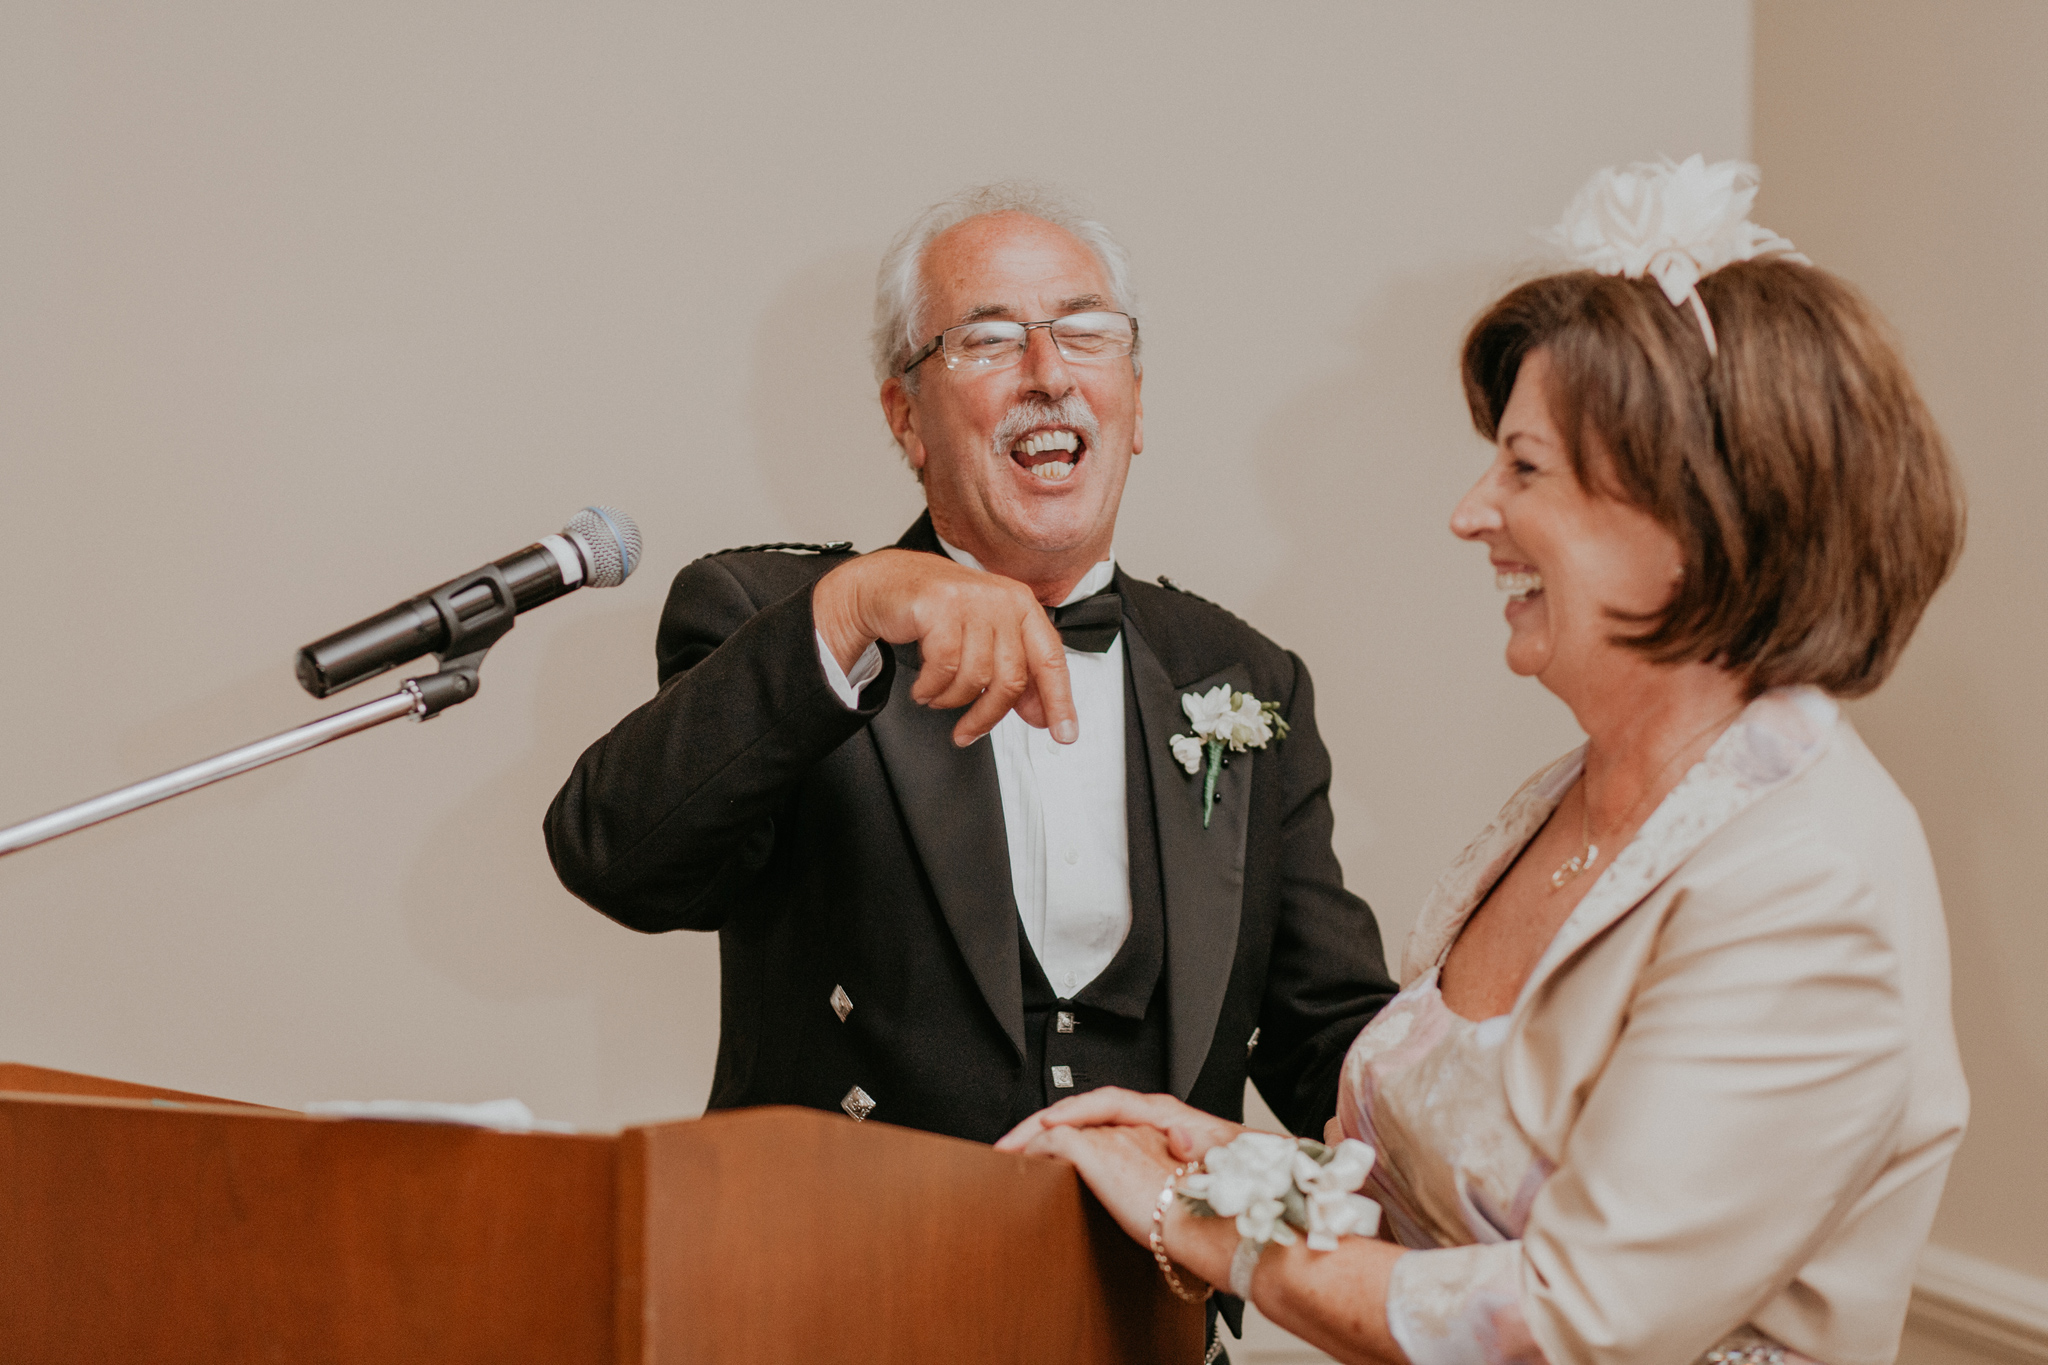 Funny wedding speeches candid documentary photo